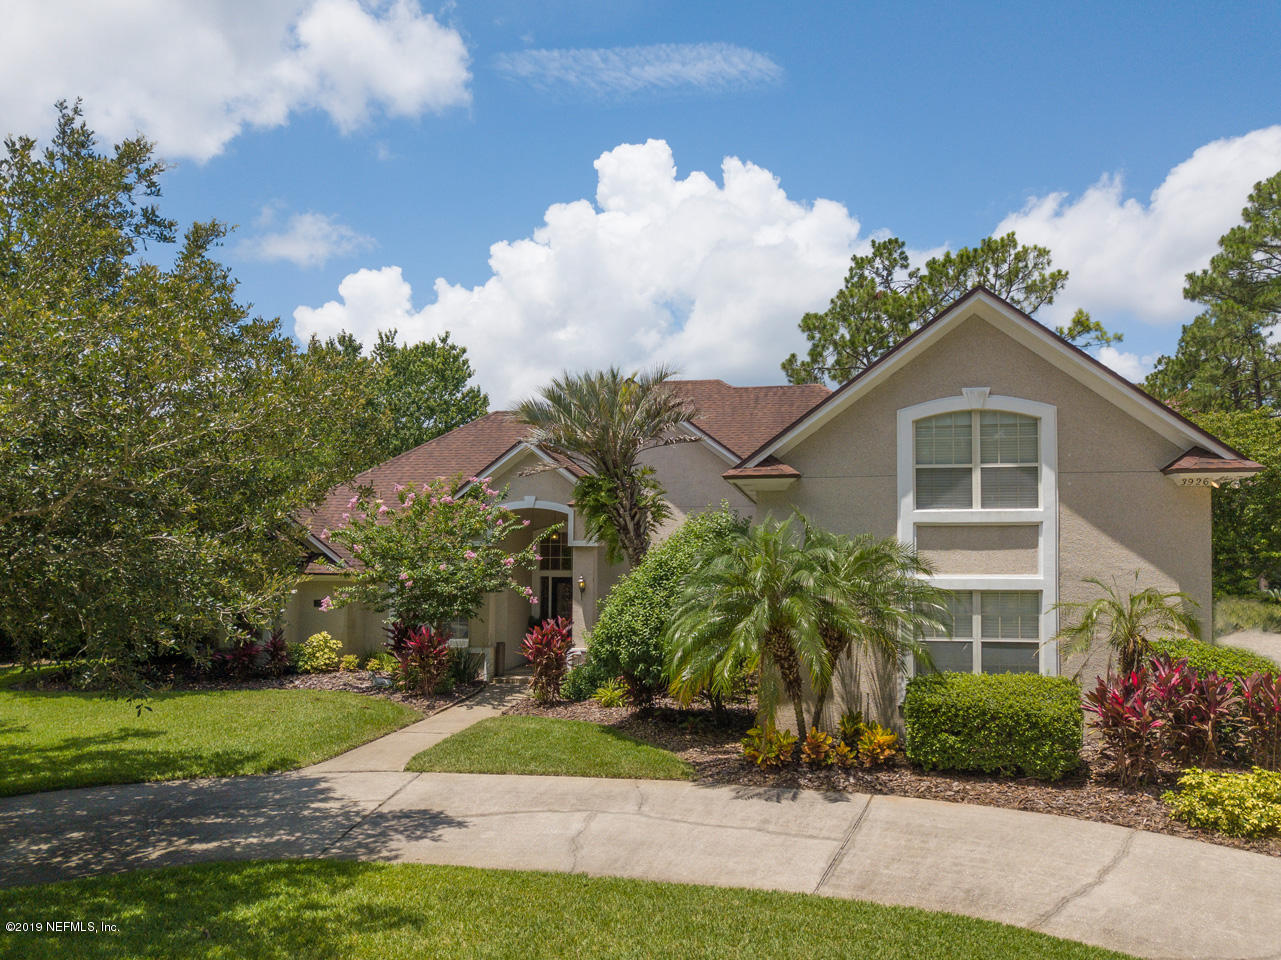 3926 CHICORA WOOD, JACKSONVILLE, FLORIDA 32224, 5 Bedrooms Bedrooms, ,4 BathroomsBathrooms,For sale,CHICORA WOOD,1005290